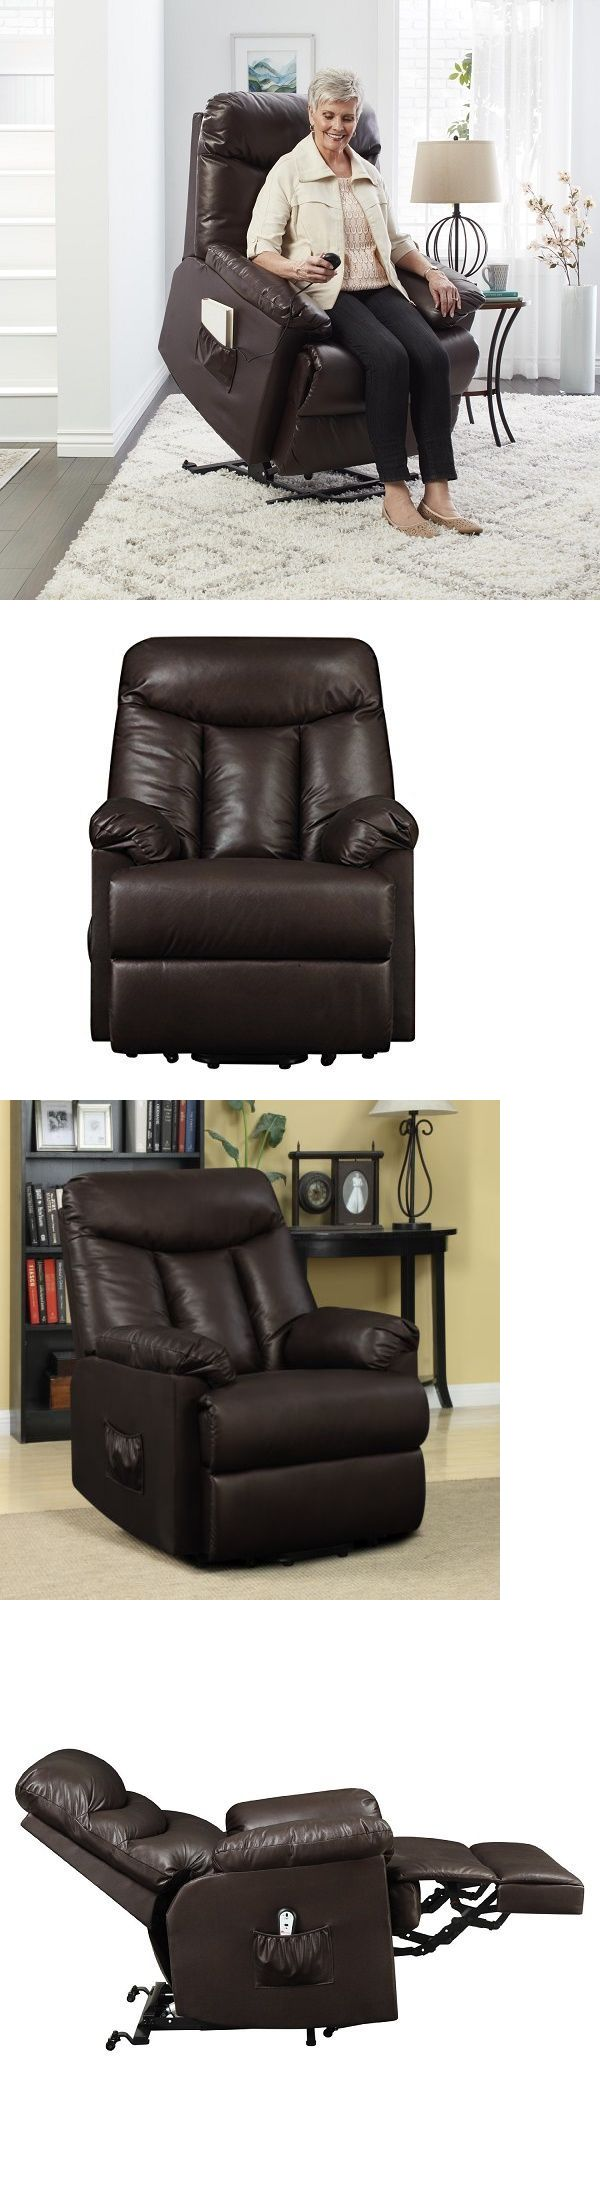 stairlifts and elevators power recliner lift chair electric pro lounger wall hugger medical support 300lb